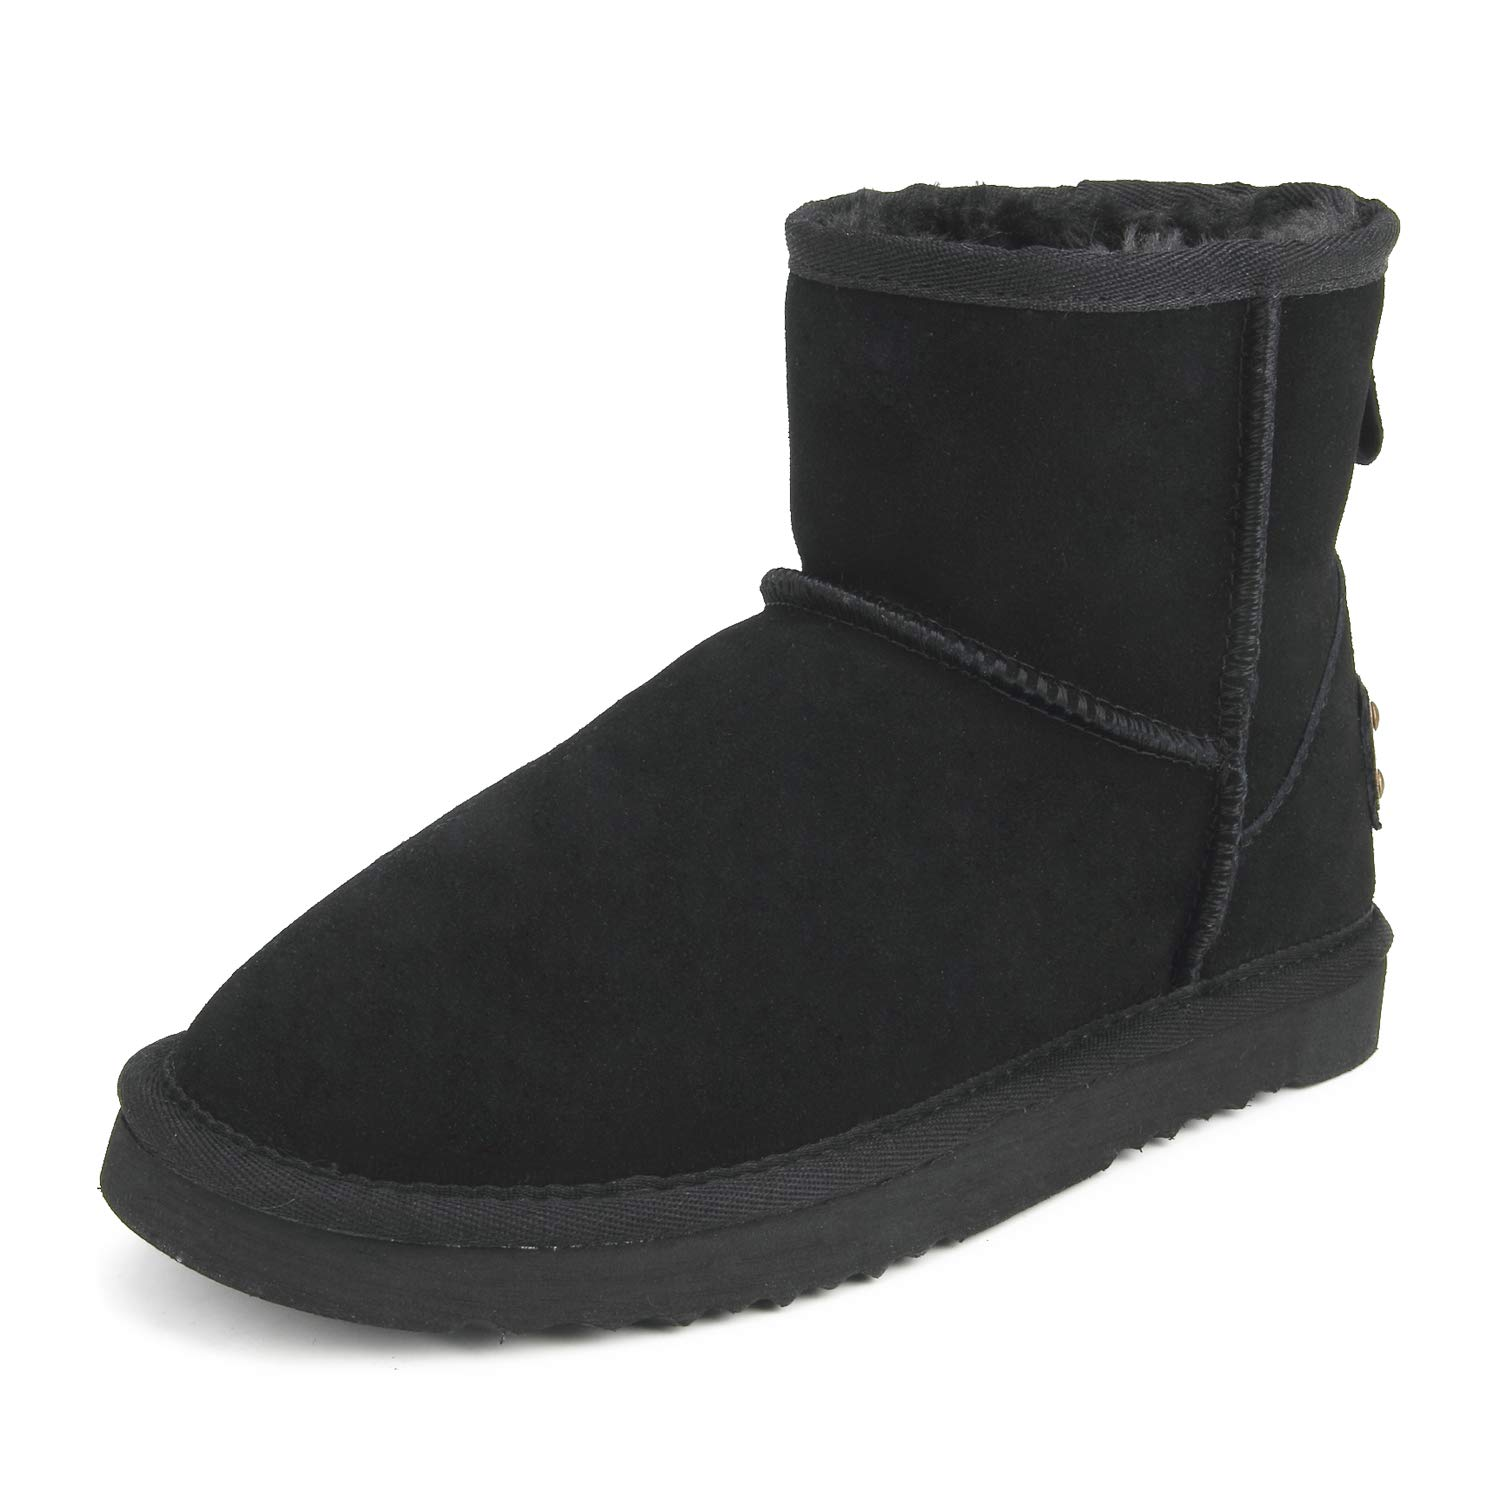 Black(f54) Ausland--Women's Half Snow Boots, with Water-Resistant Vamp, Thick Fur Lining and Lightweight Rubber Sole